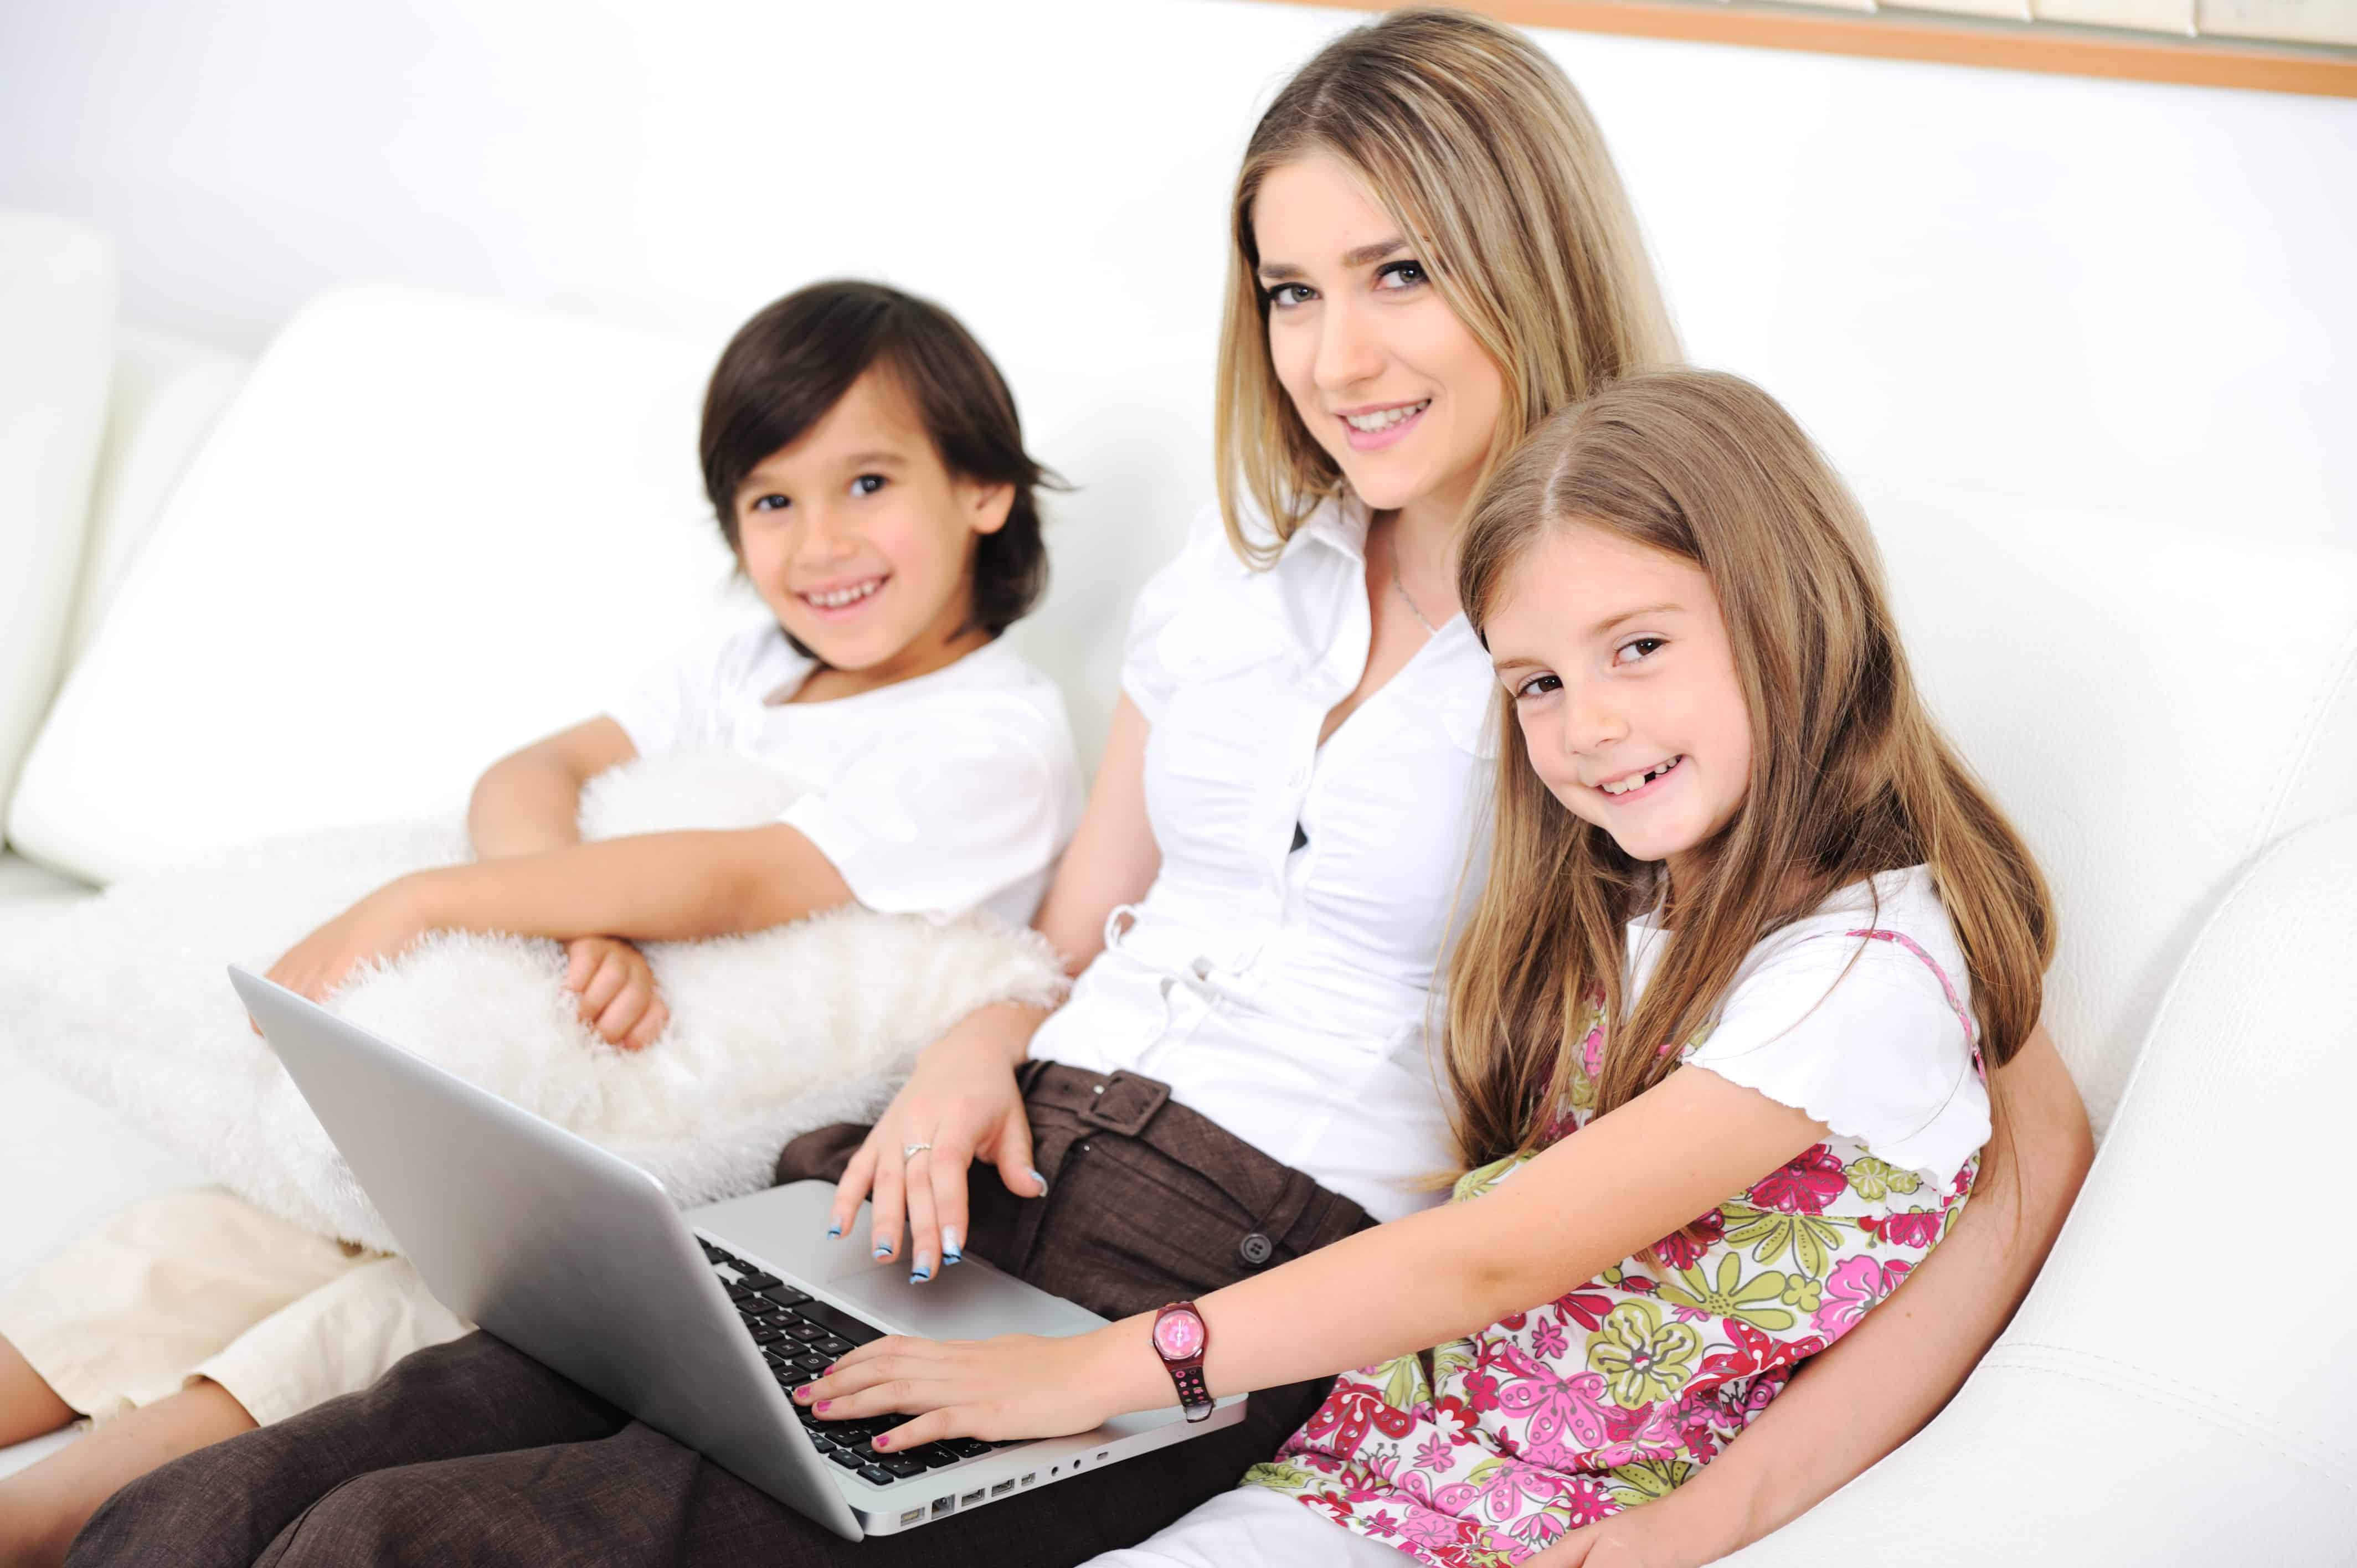 Four tips to help secure your family's online life